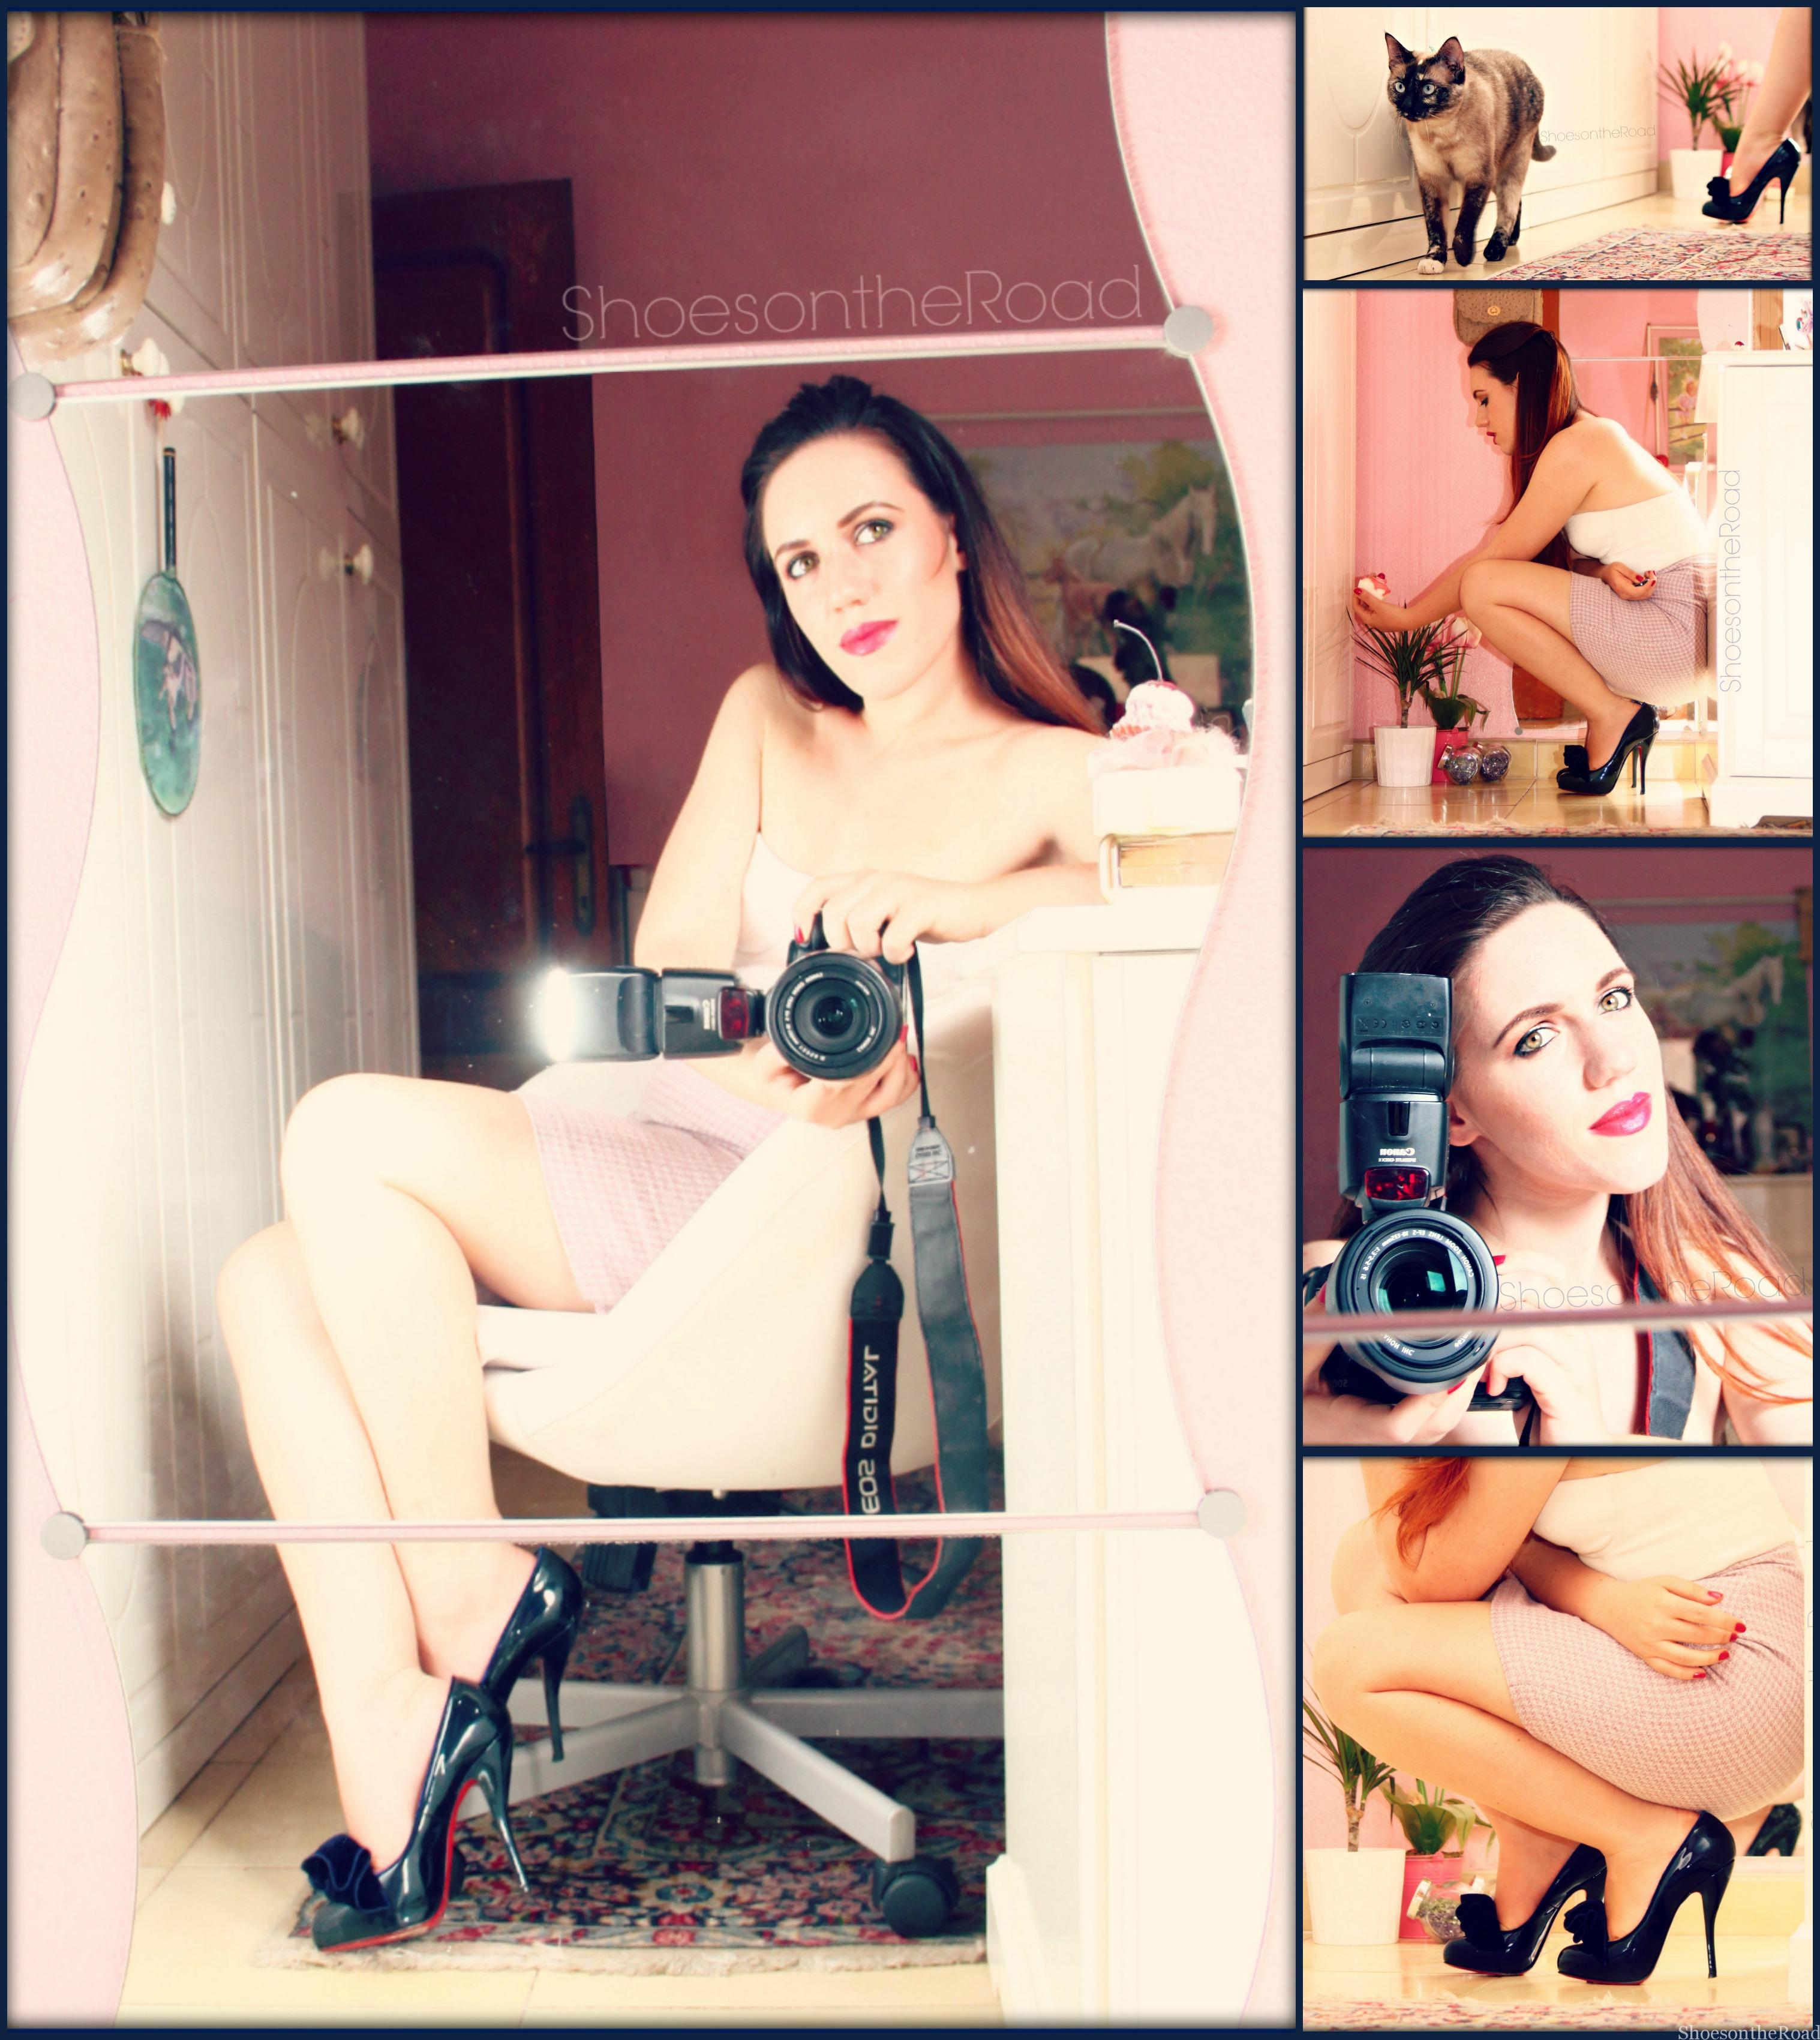 Louboutin_Lady_page_collage_shoesontheroad